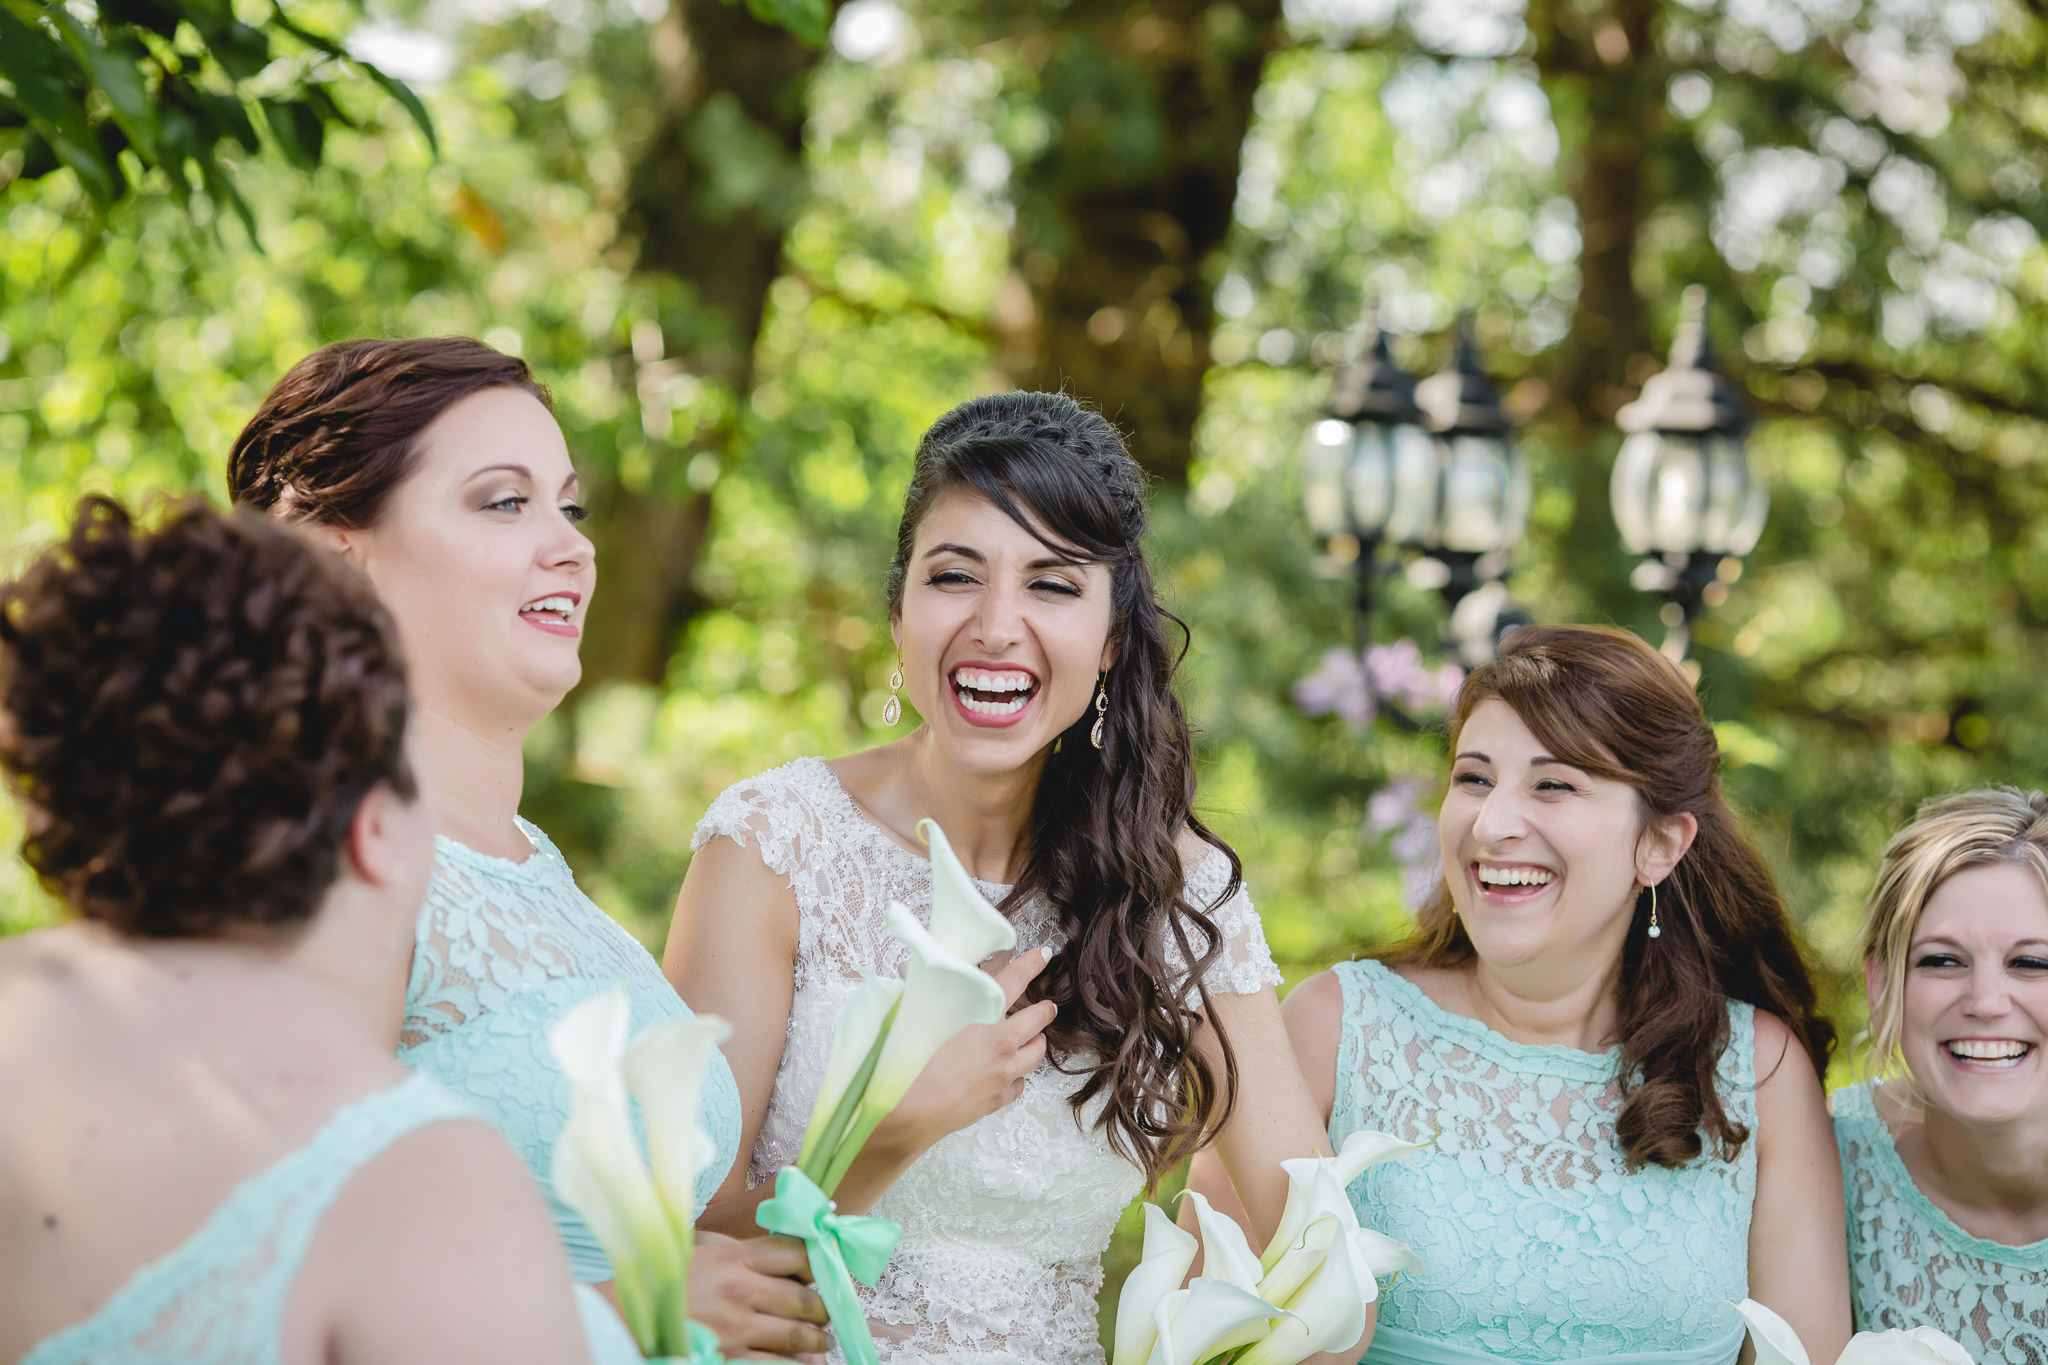 Bride laughing with her bridesmaids during portraits at Greystone Fields